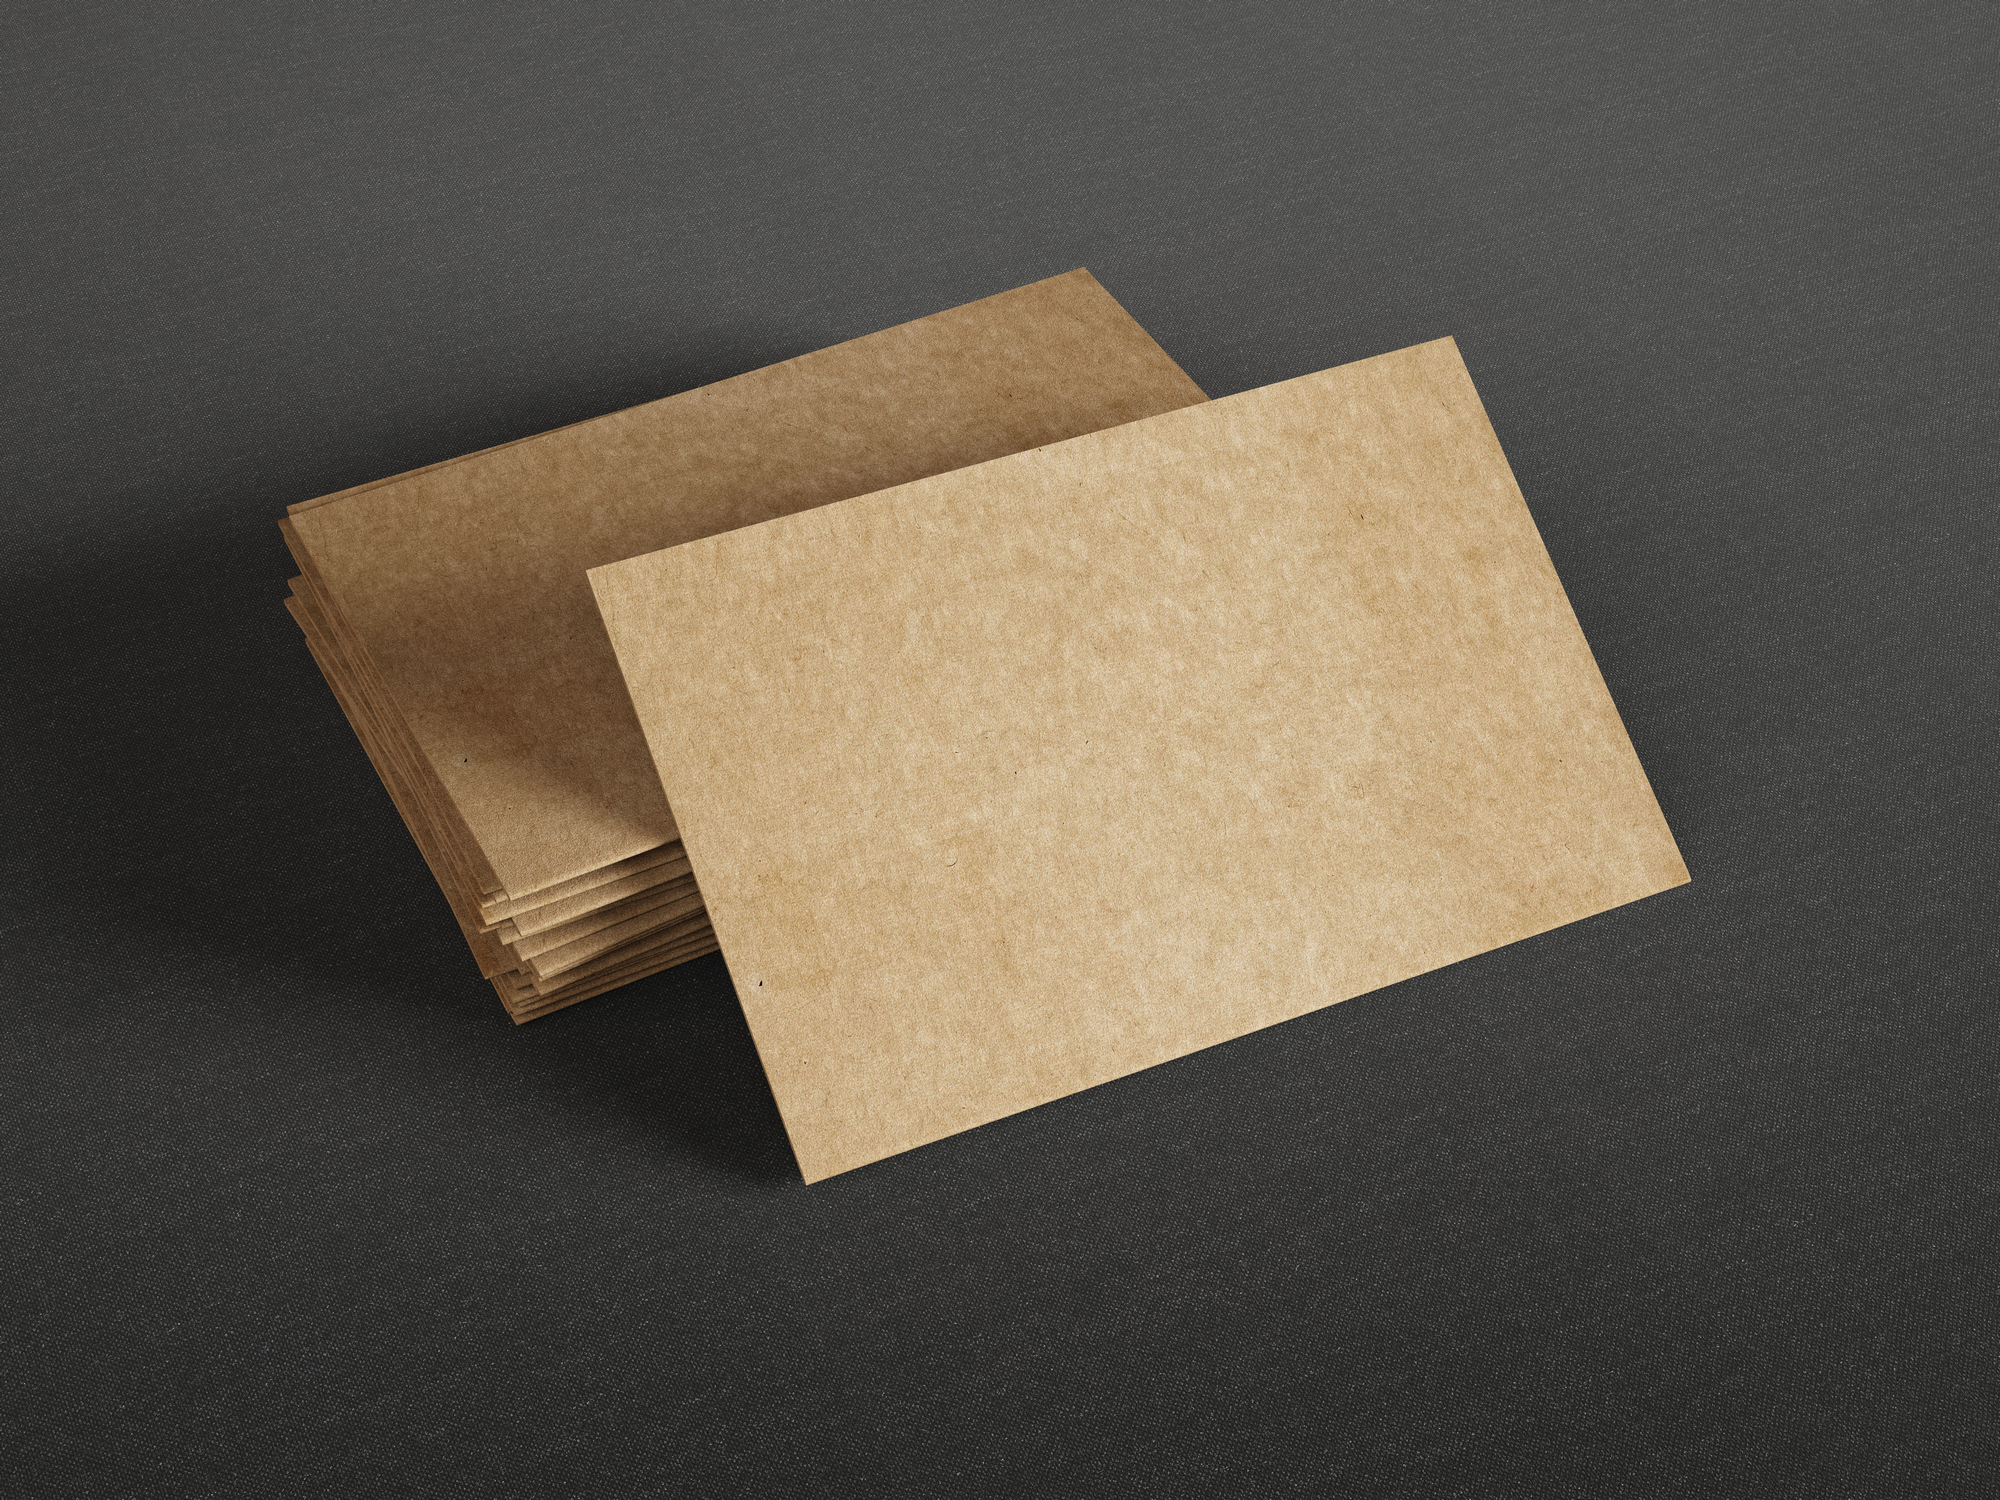 Envelope stack